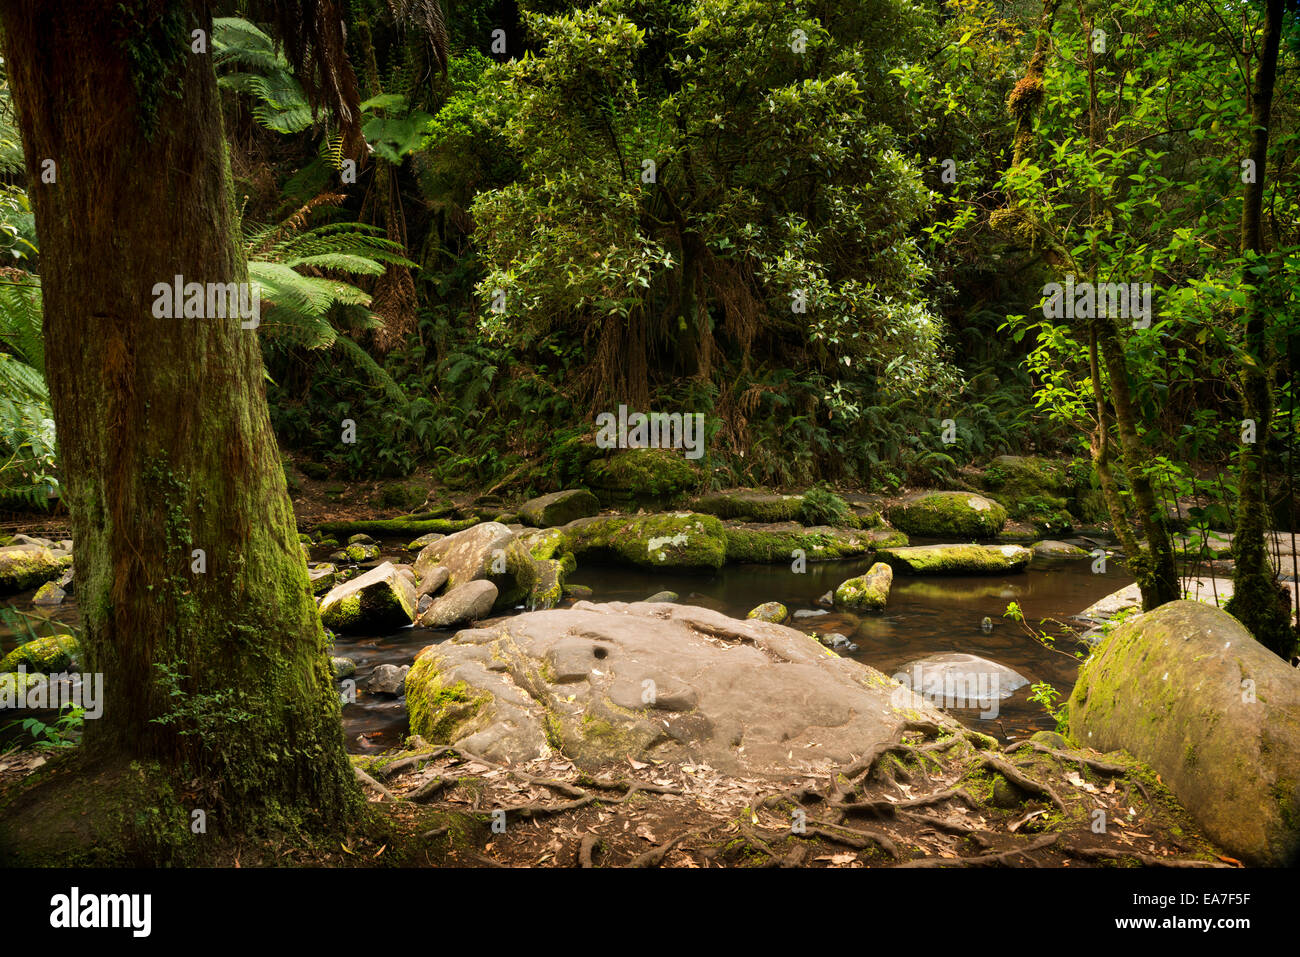 Forest in the Great Otways National Park along the Great Ocean Road, Australia - Stock Image